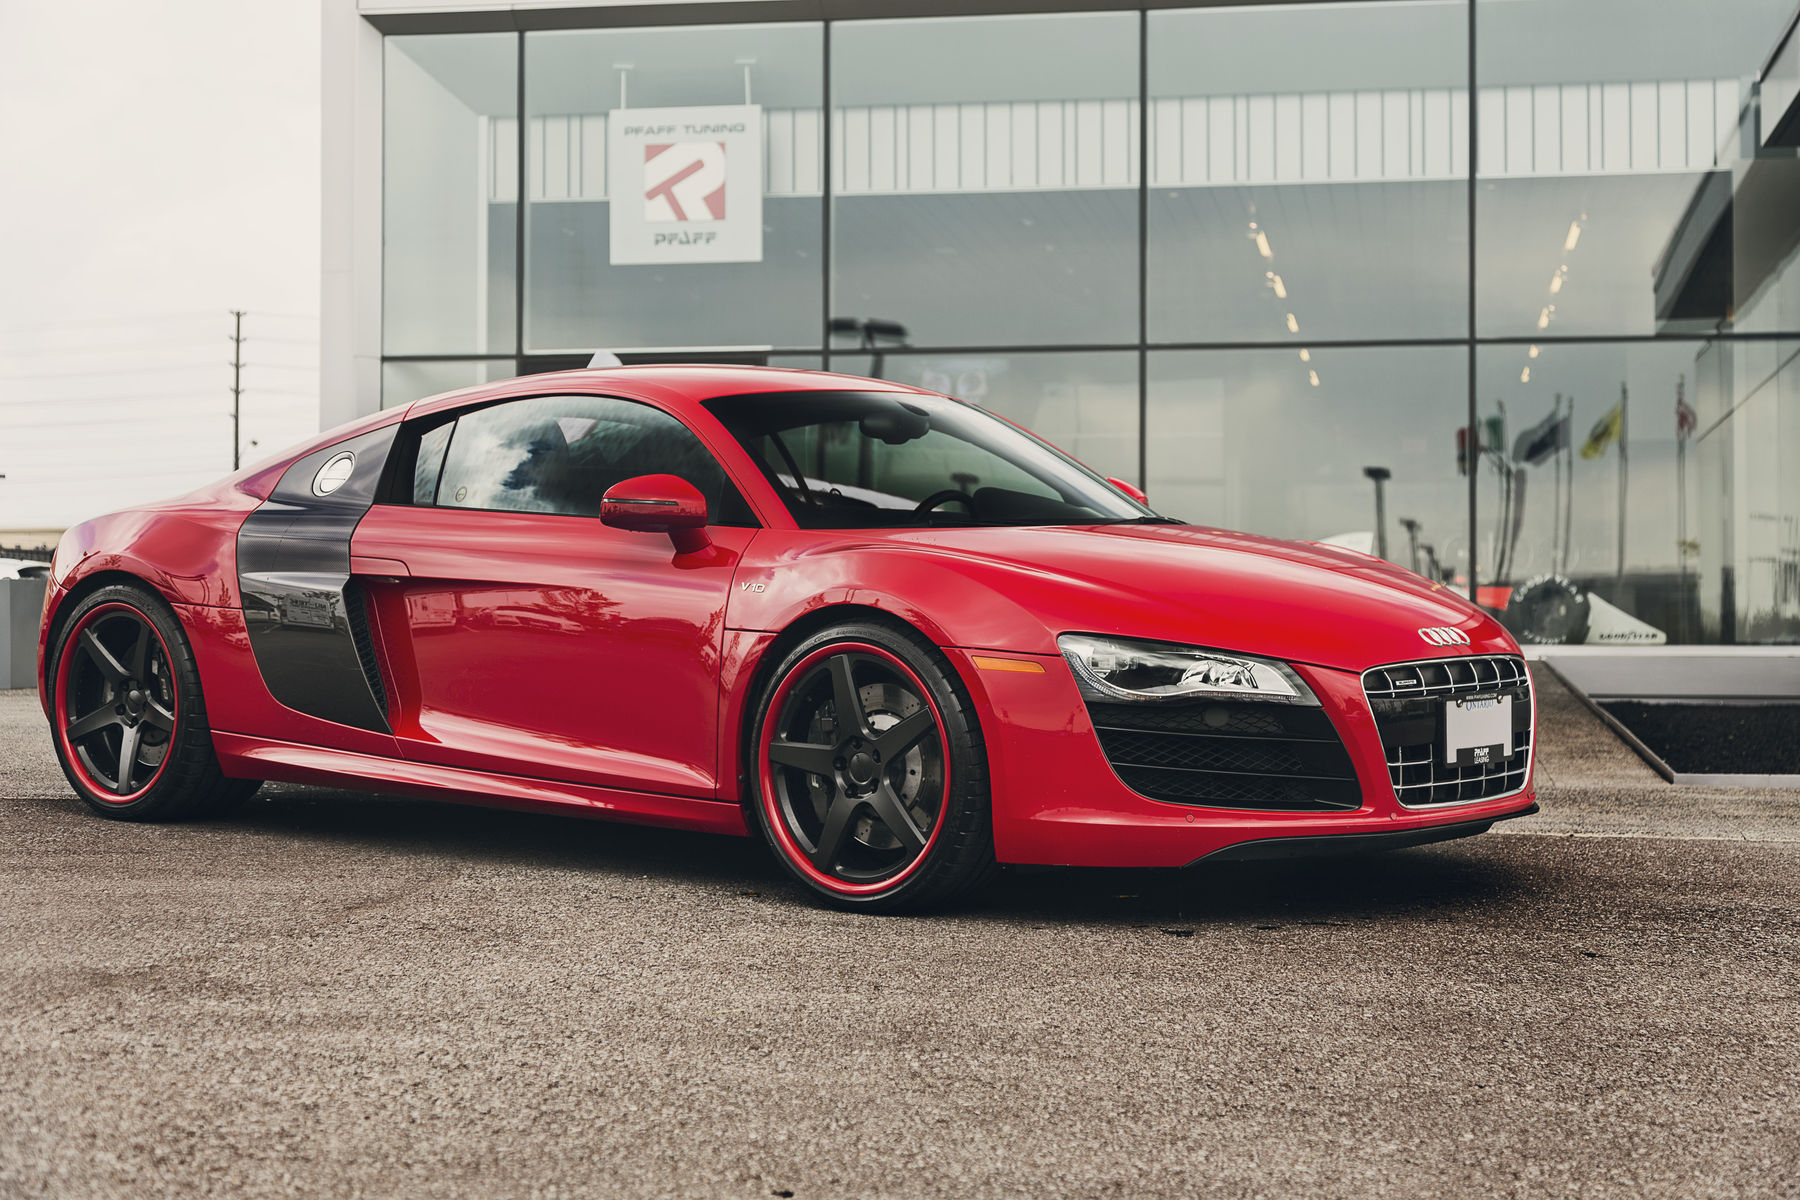 2010 Audi R8 | Audi R8 V10 by Pfaff Tuning on Forgeline CF3C Wheels